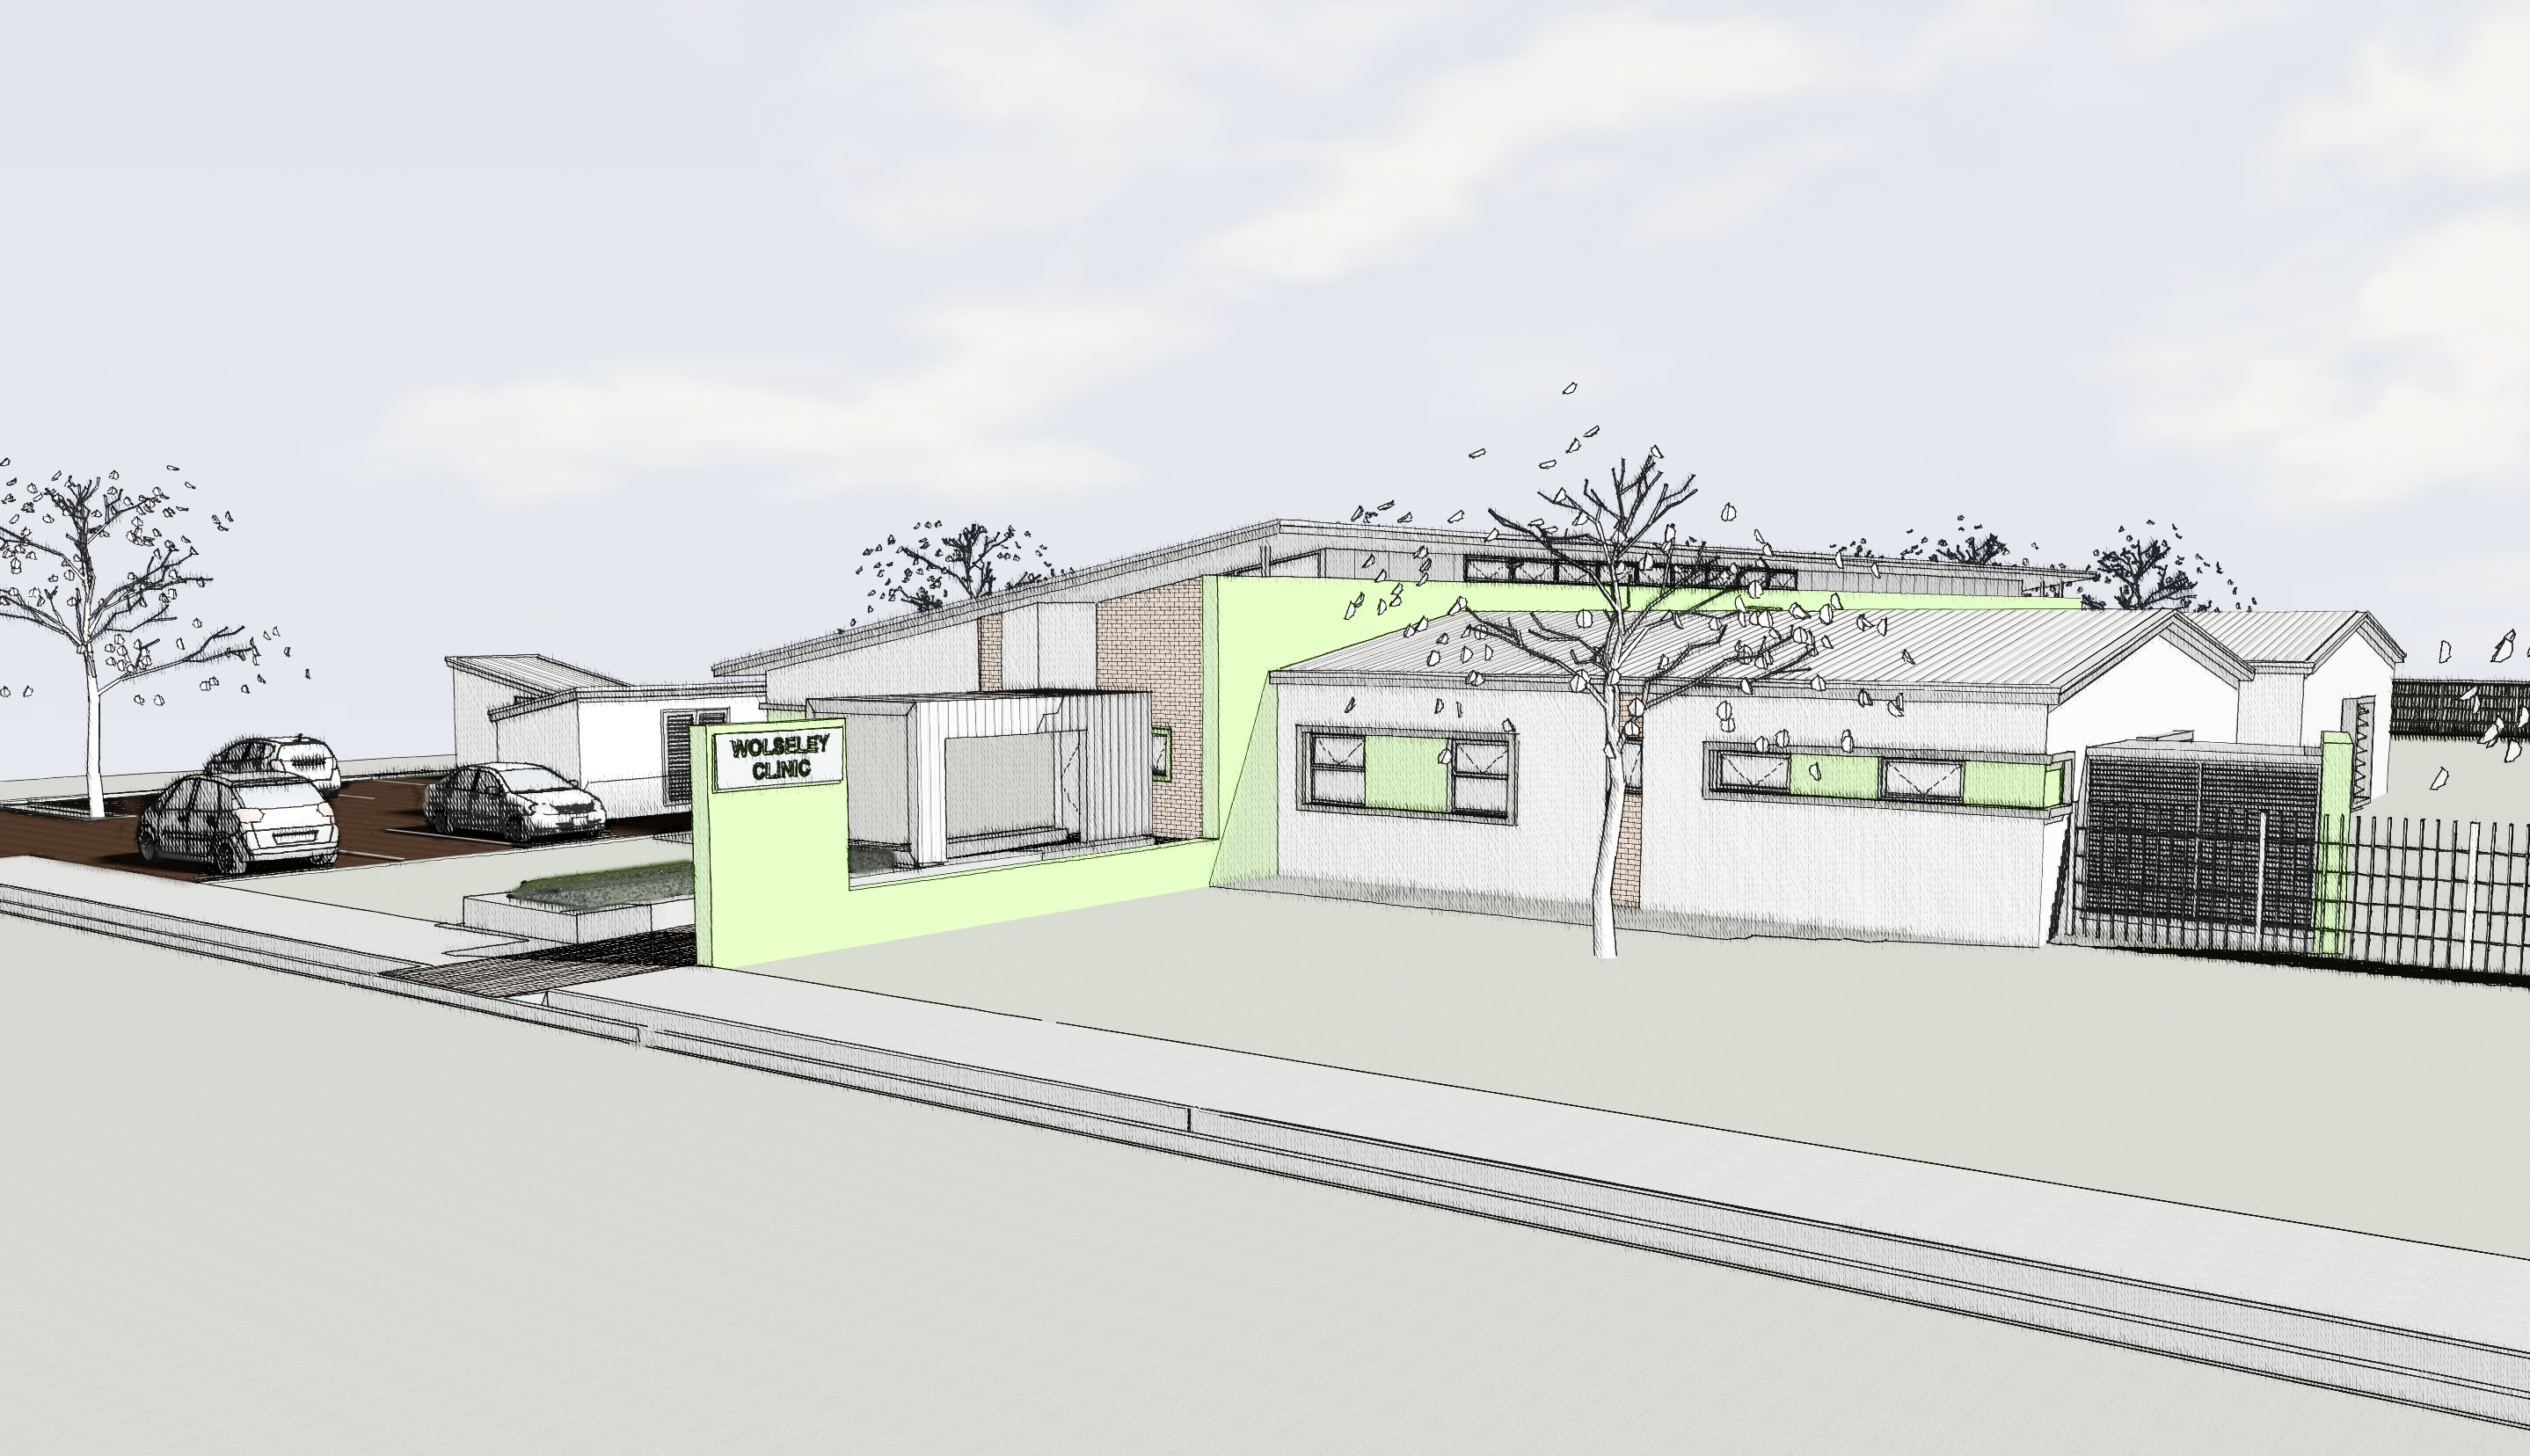 An artist's impression of a community day centre.